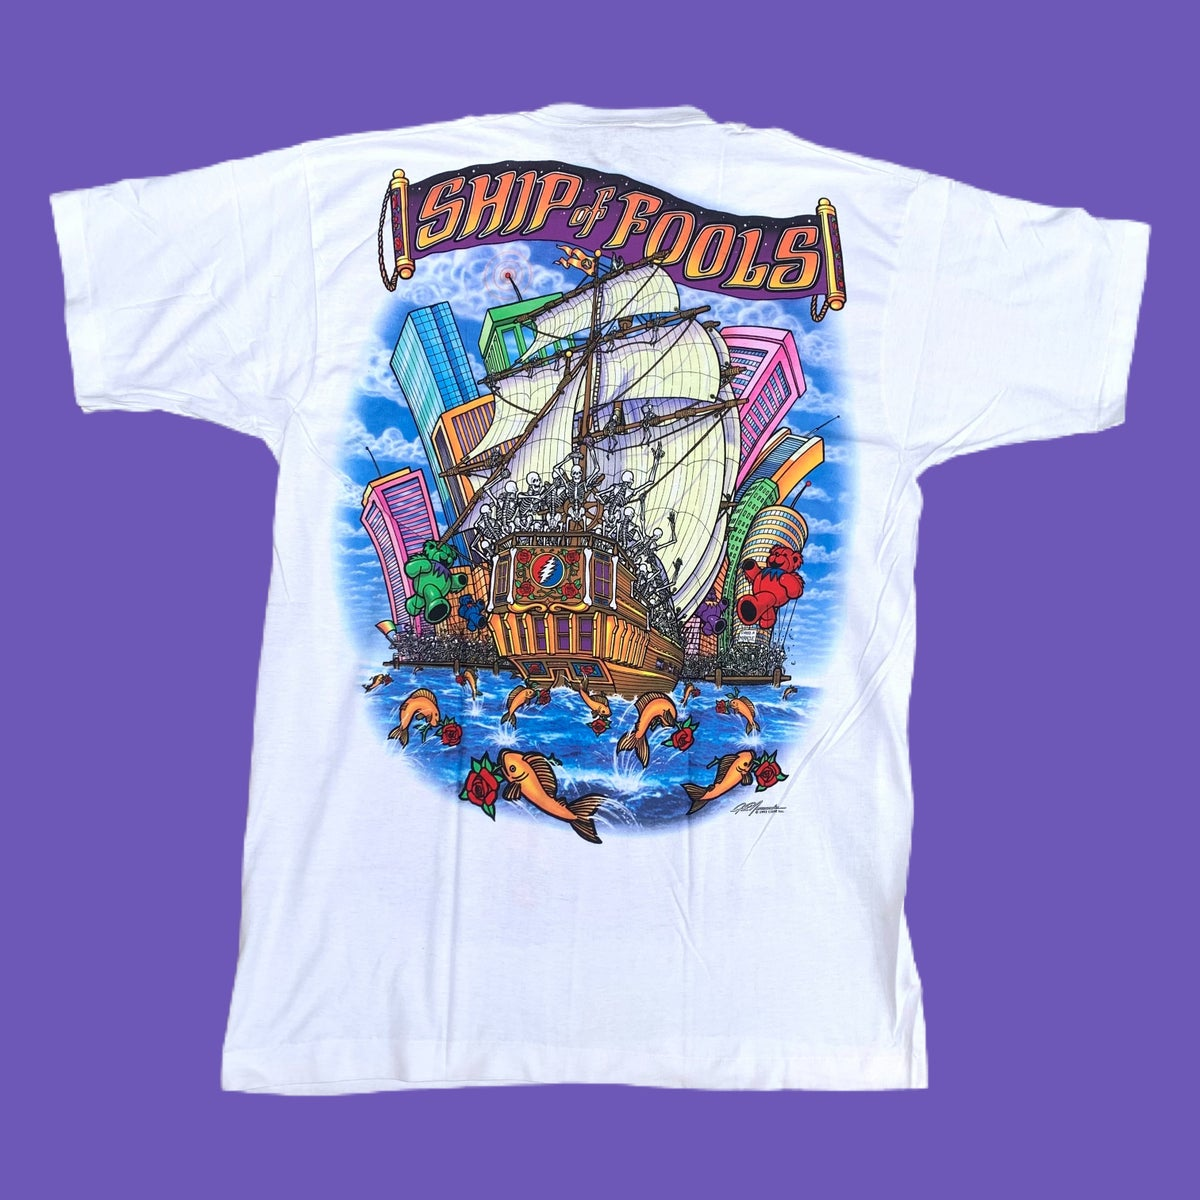 Original Vintage Grateful Dead 1990's Ship of Fools Tee!!! X-Large